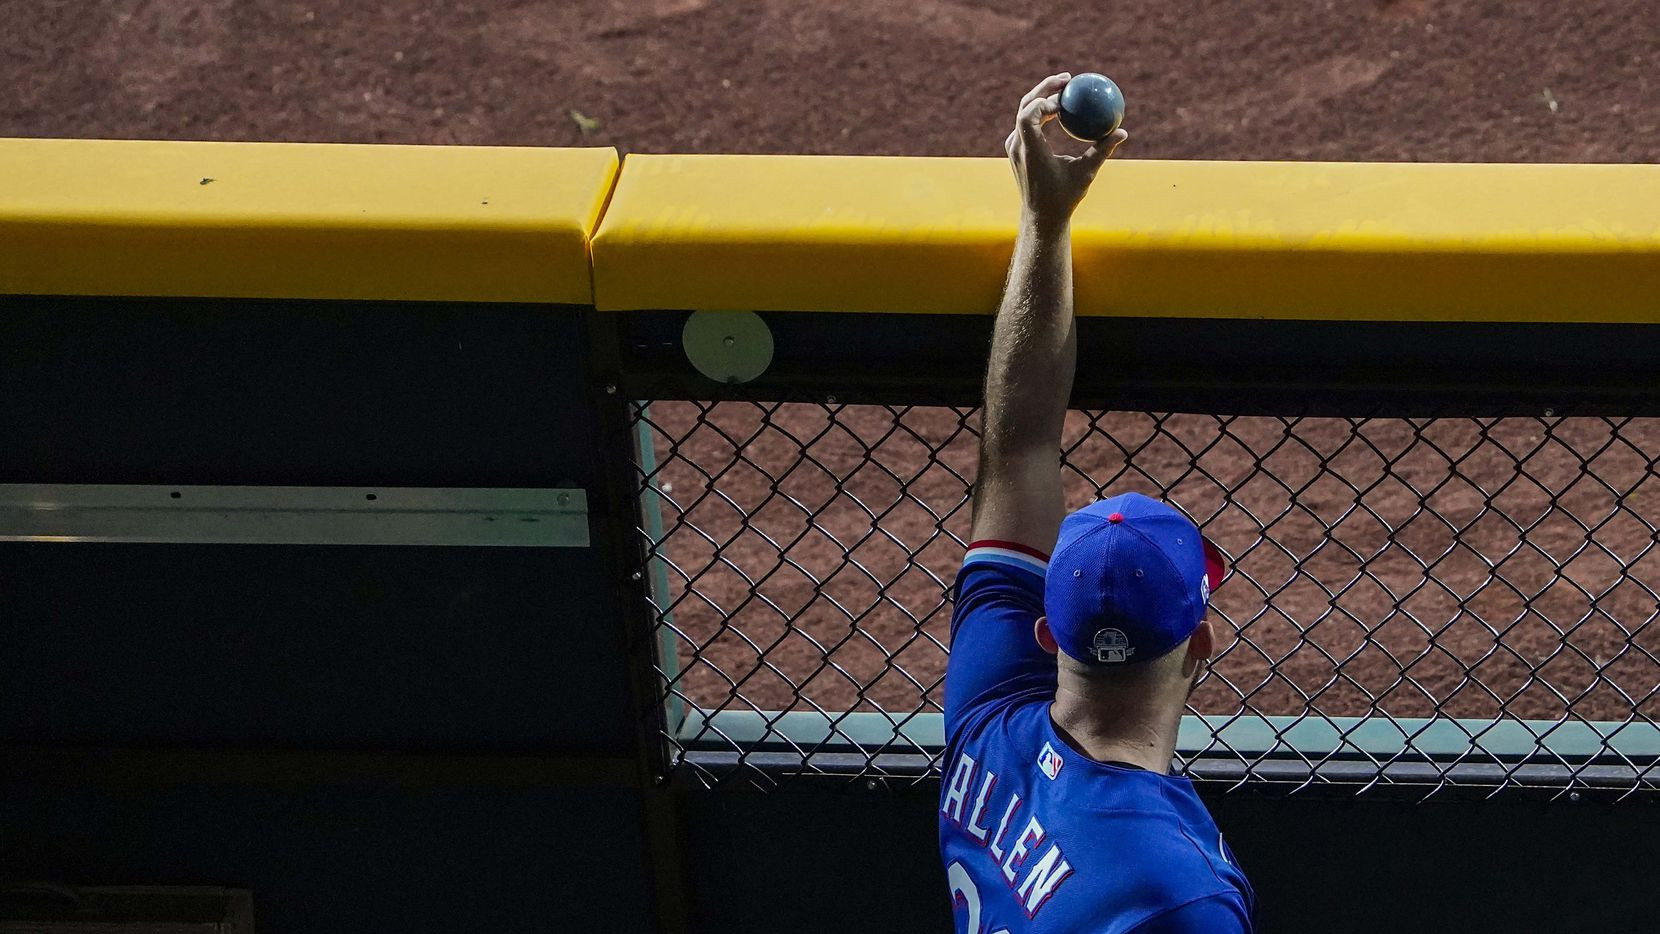 Texas Rangers pitcher Cody Allen holds up a weighted ball in the bullpen during the Rangers first Summer Camp workout at Globe Life Field on Friday, July 3, 2020, in Arlington. (Smiley N. Pool/The Dallas Morning News)